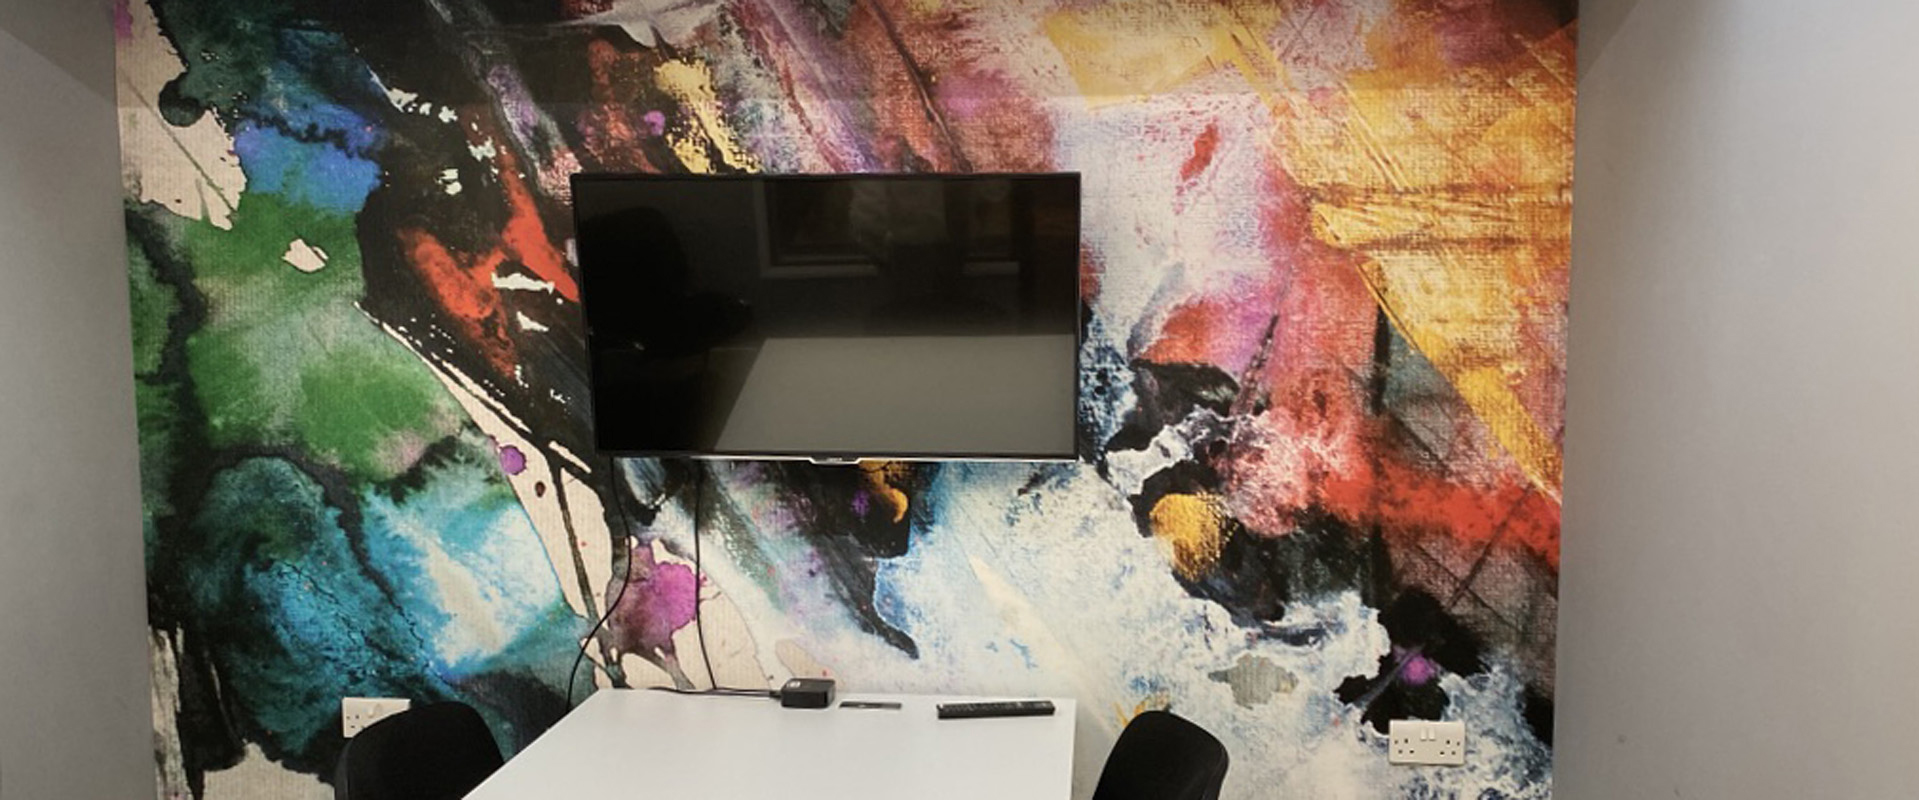 office wall decal and tv screen